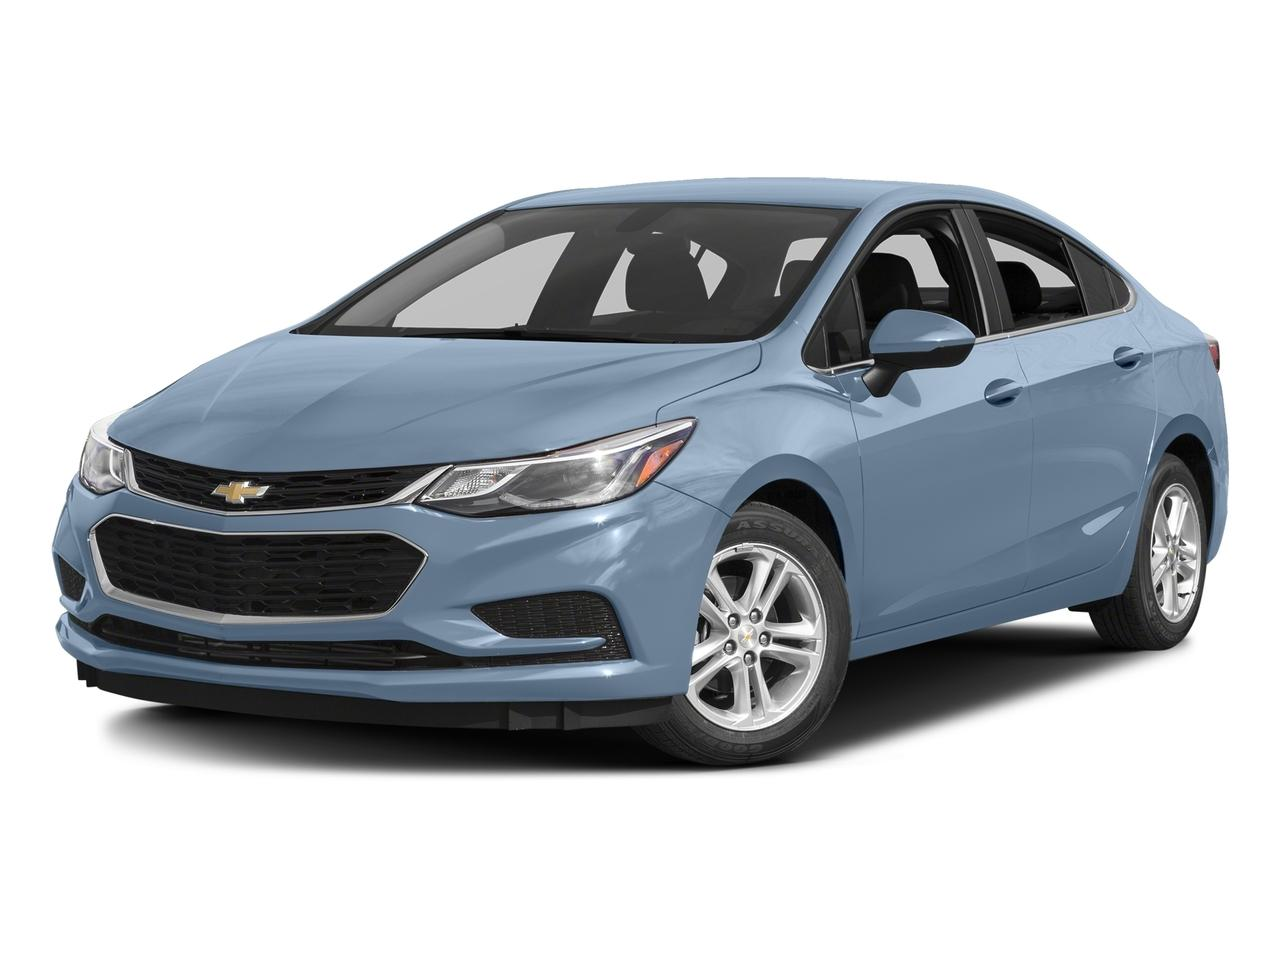 2017 Chevrolet Cruze Vehicle Photo in Plainfield, IL 60586